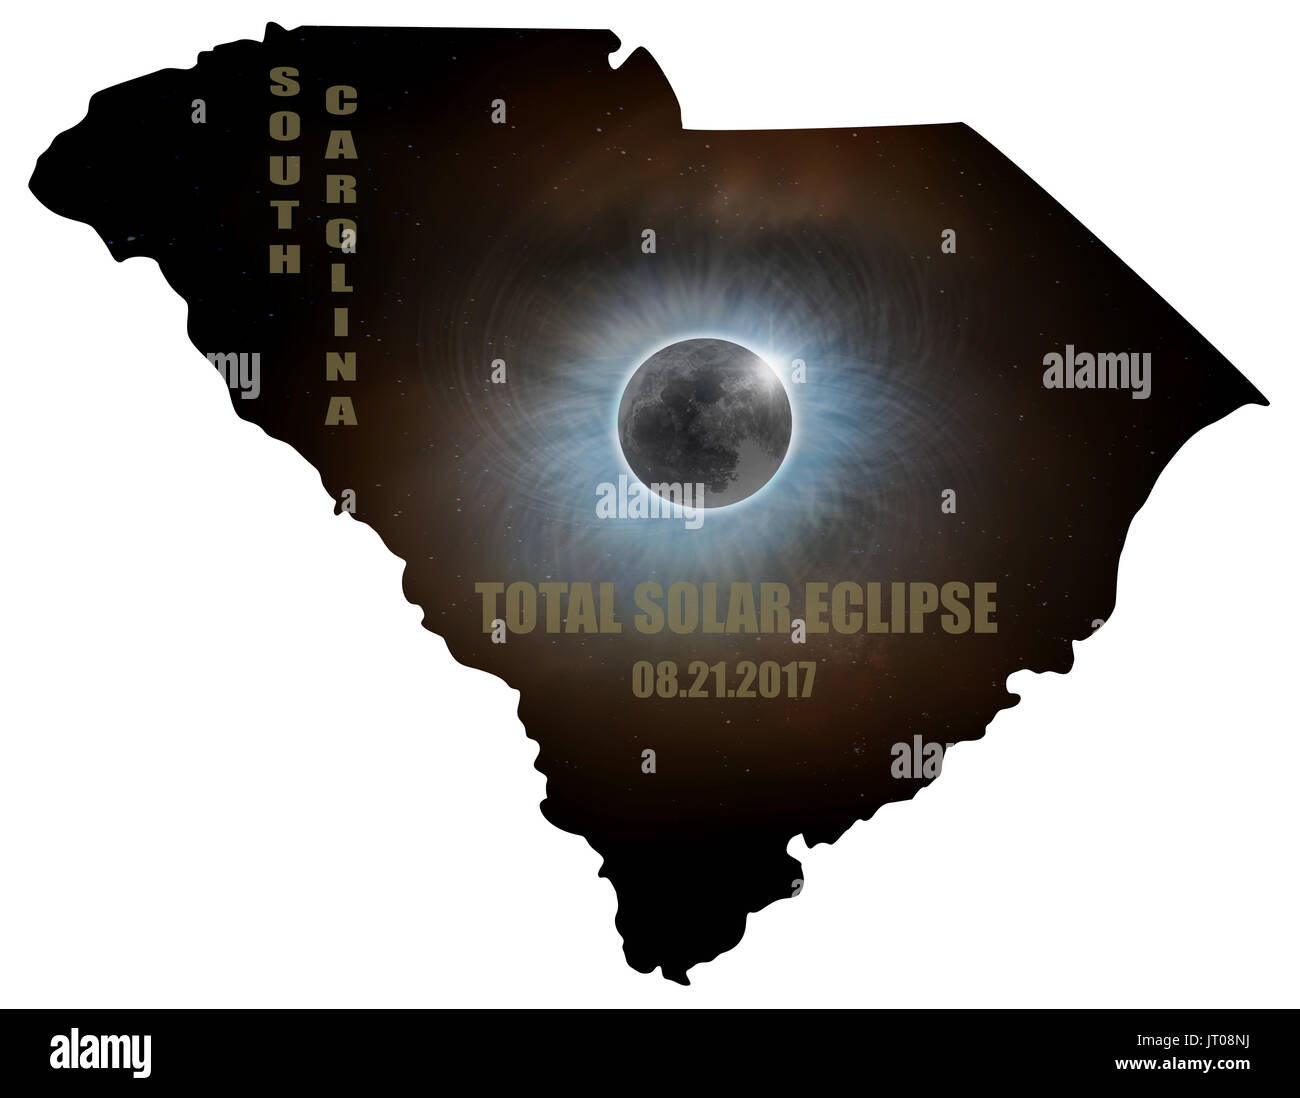 Total Solar Eclipse Sun Moon Stars Corona in South Carolina State Map Outline - Stock Image